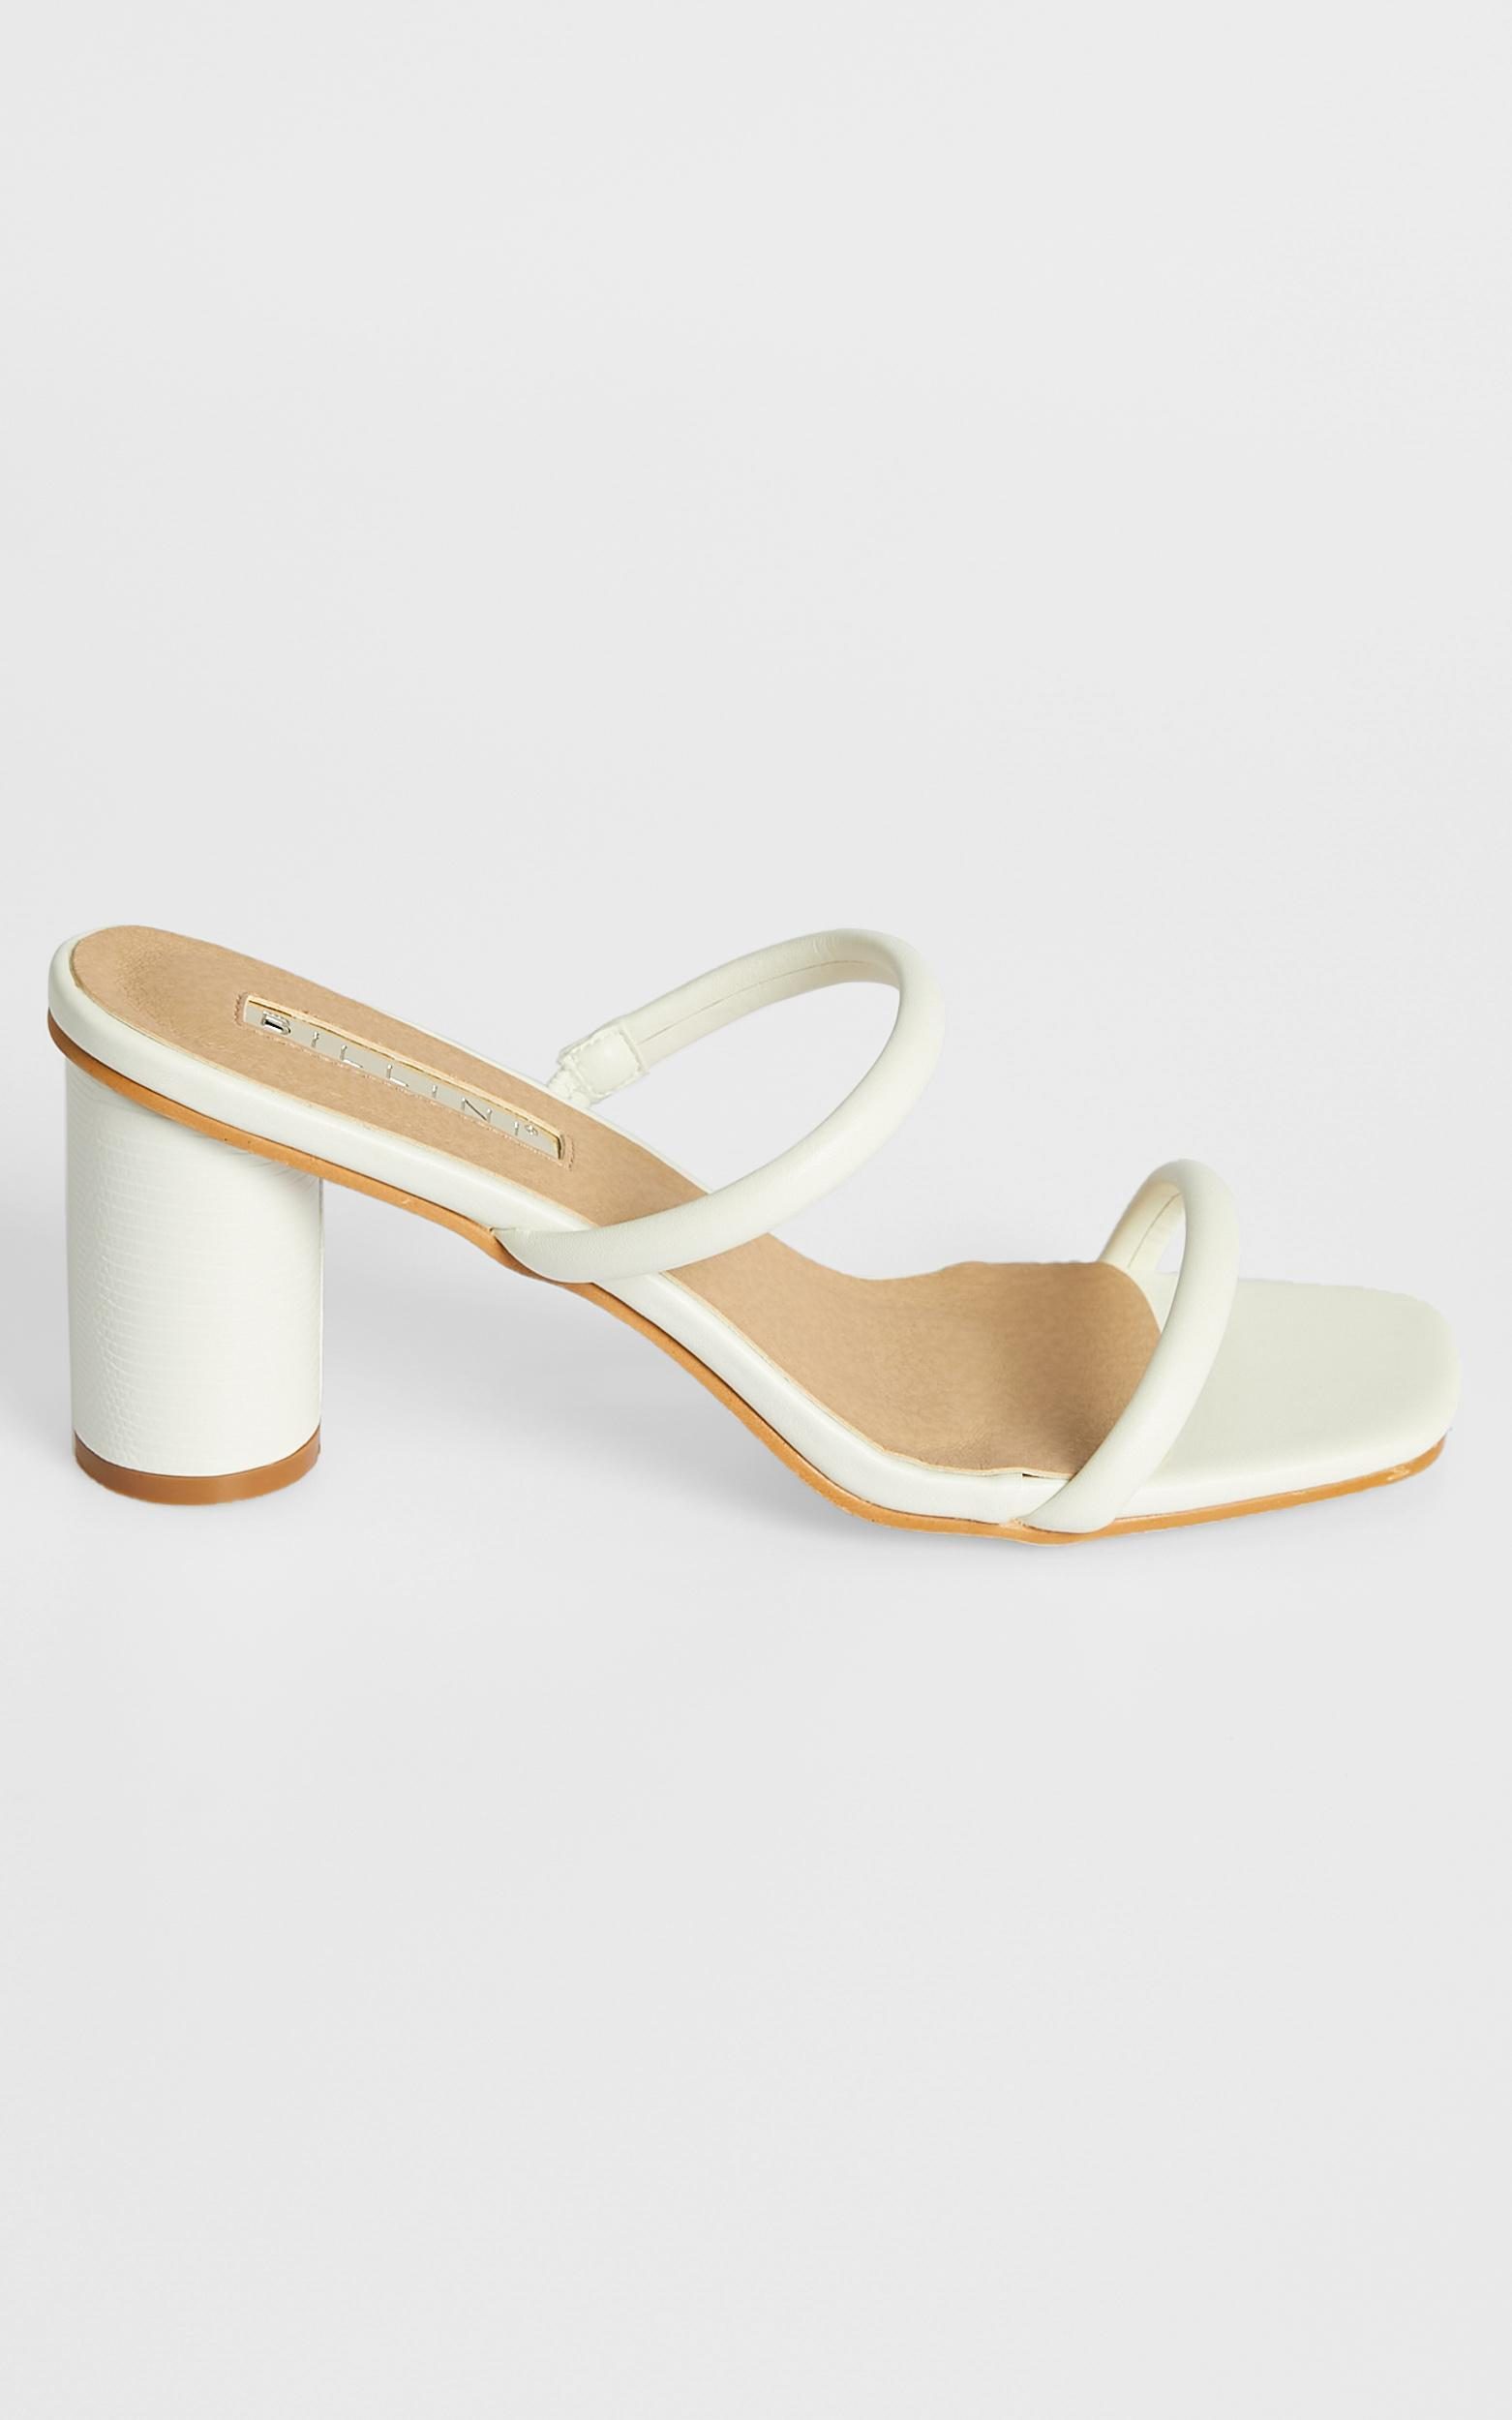 Billini - Davey Heels in White - 5, White, hi-res image number null